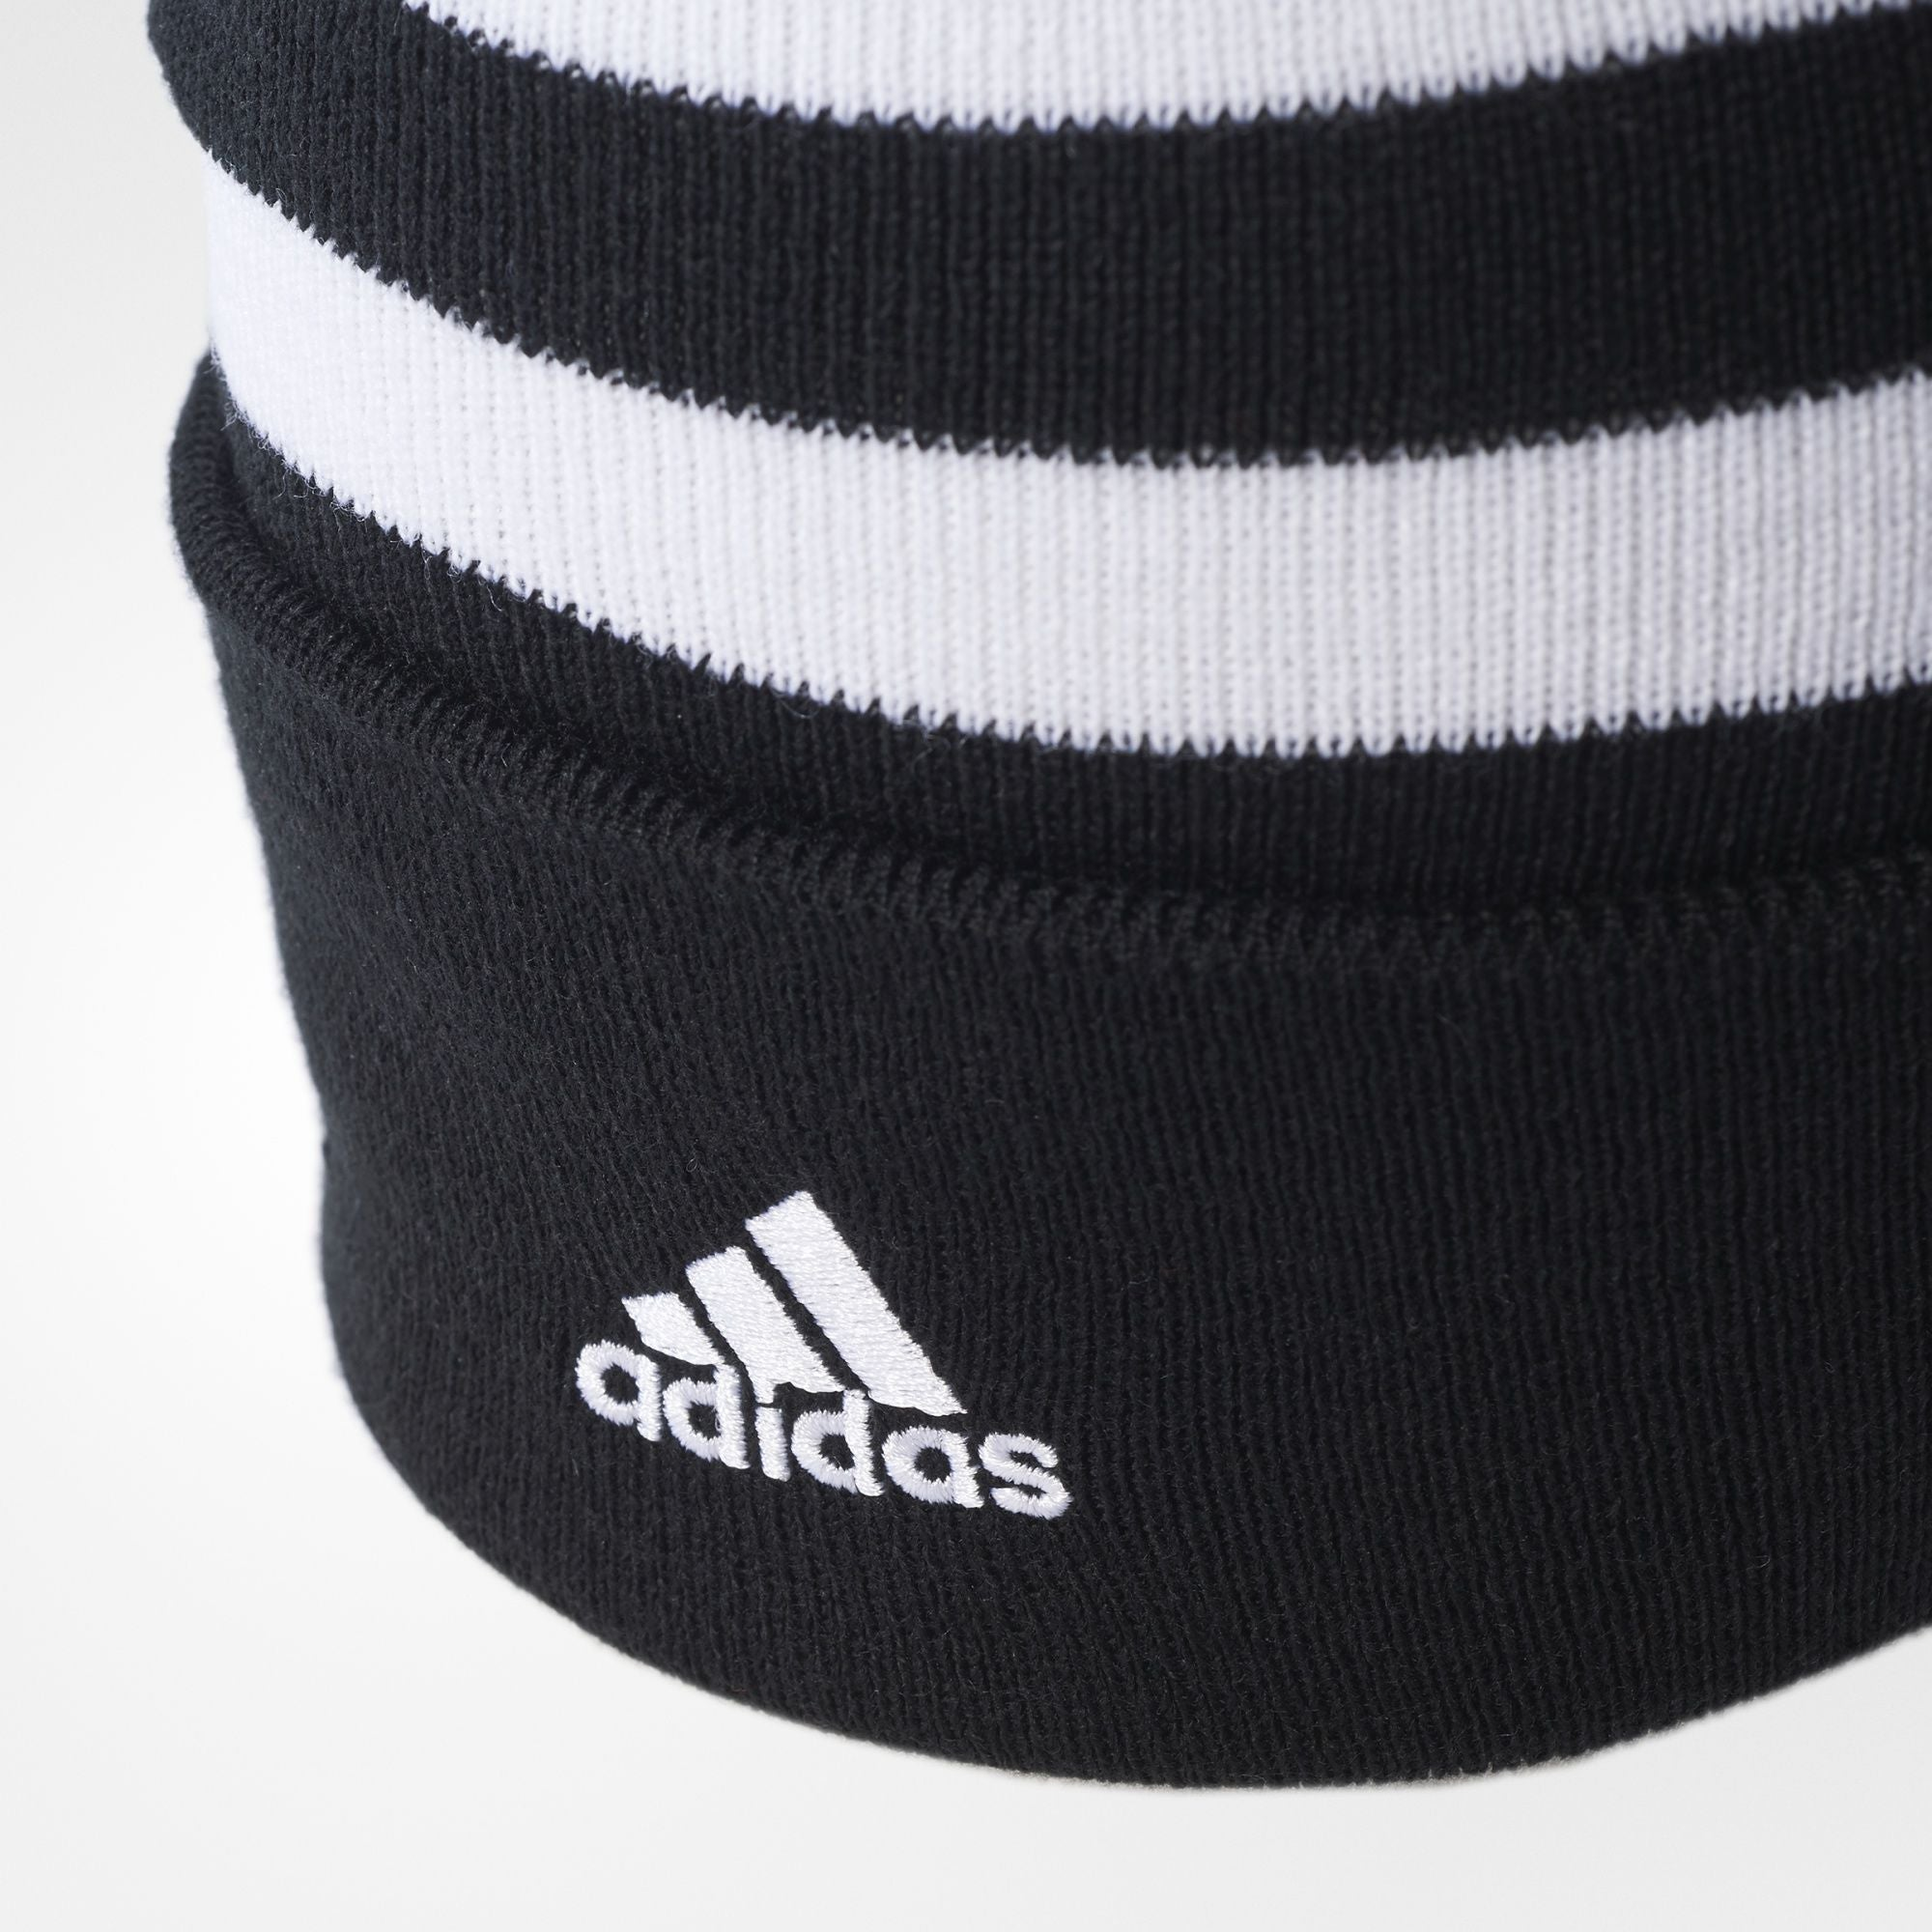 9f3e18fbe62dc0 ... buy manchester united caps handbags online in india 014bf 8bccd  greece adidas  manchester united 3 stripes beanie 4d03f d3a84